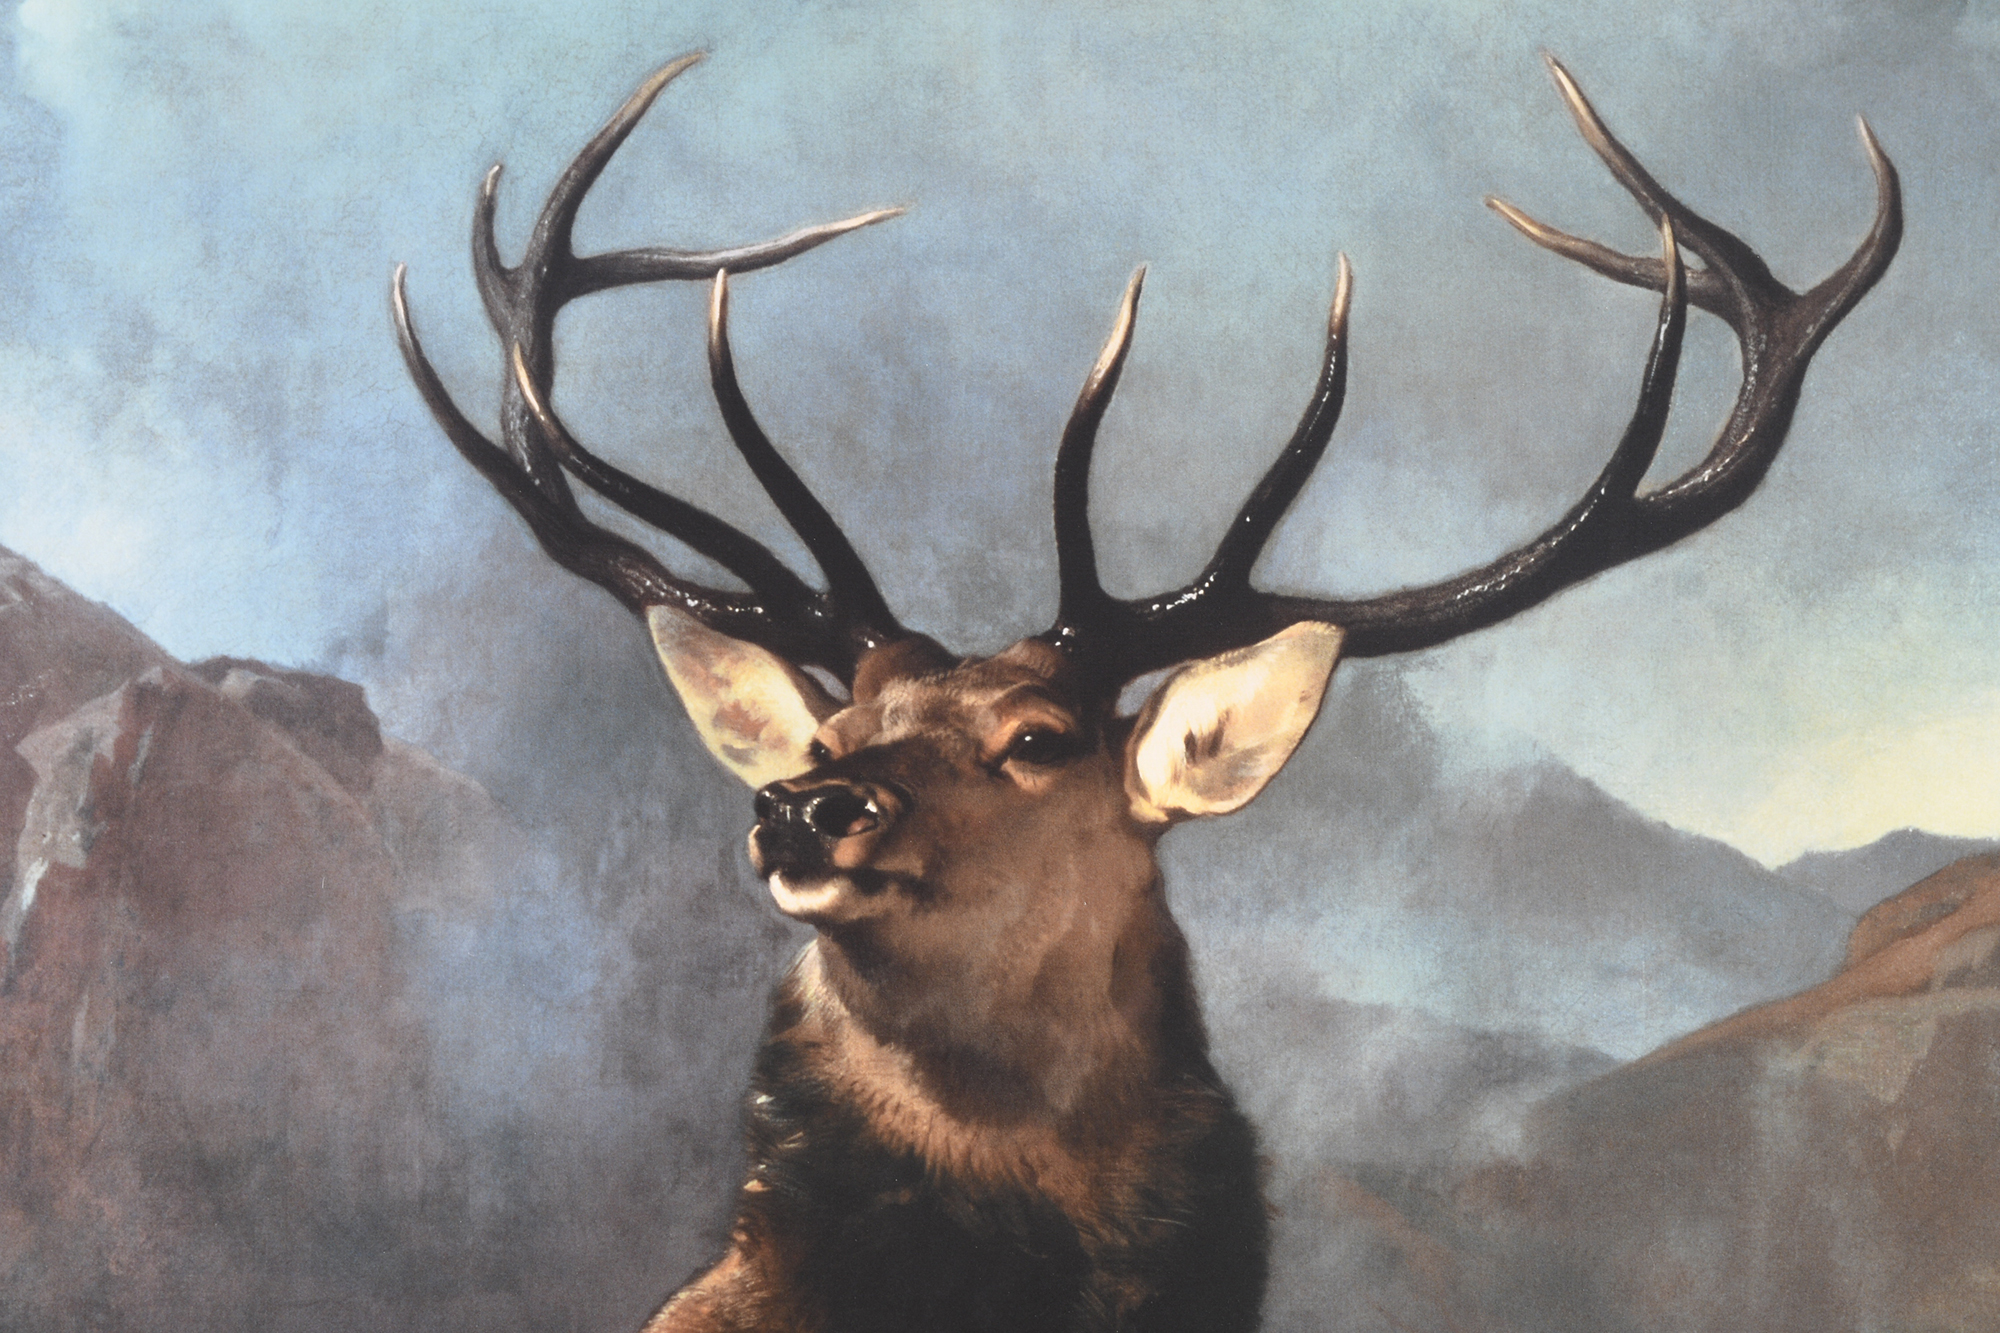 """Edwin Landseer Limited Edition """"Monarch of the Glen"""" 1 of only 85 Worldwide. - Image 8 of 9"""